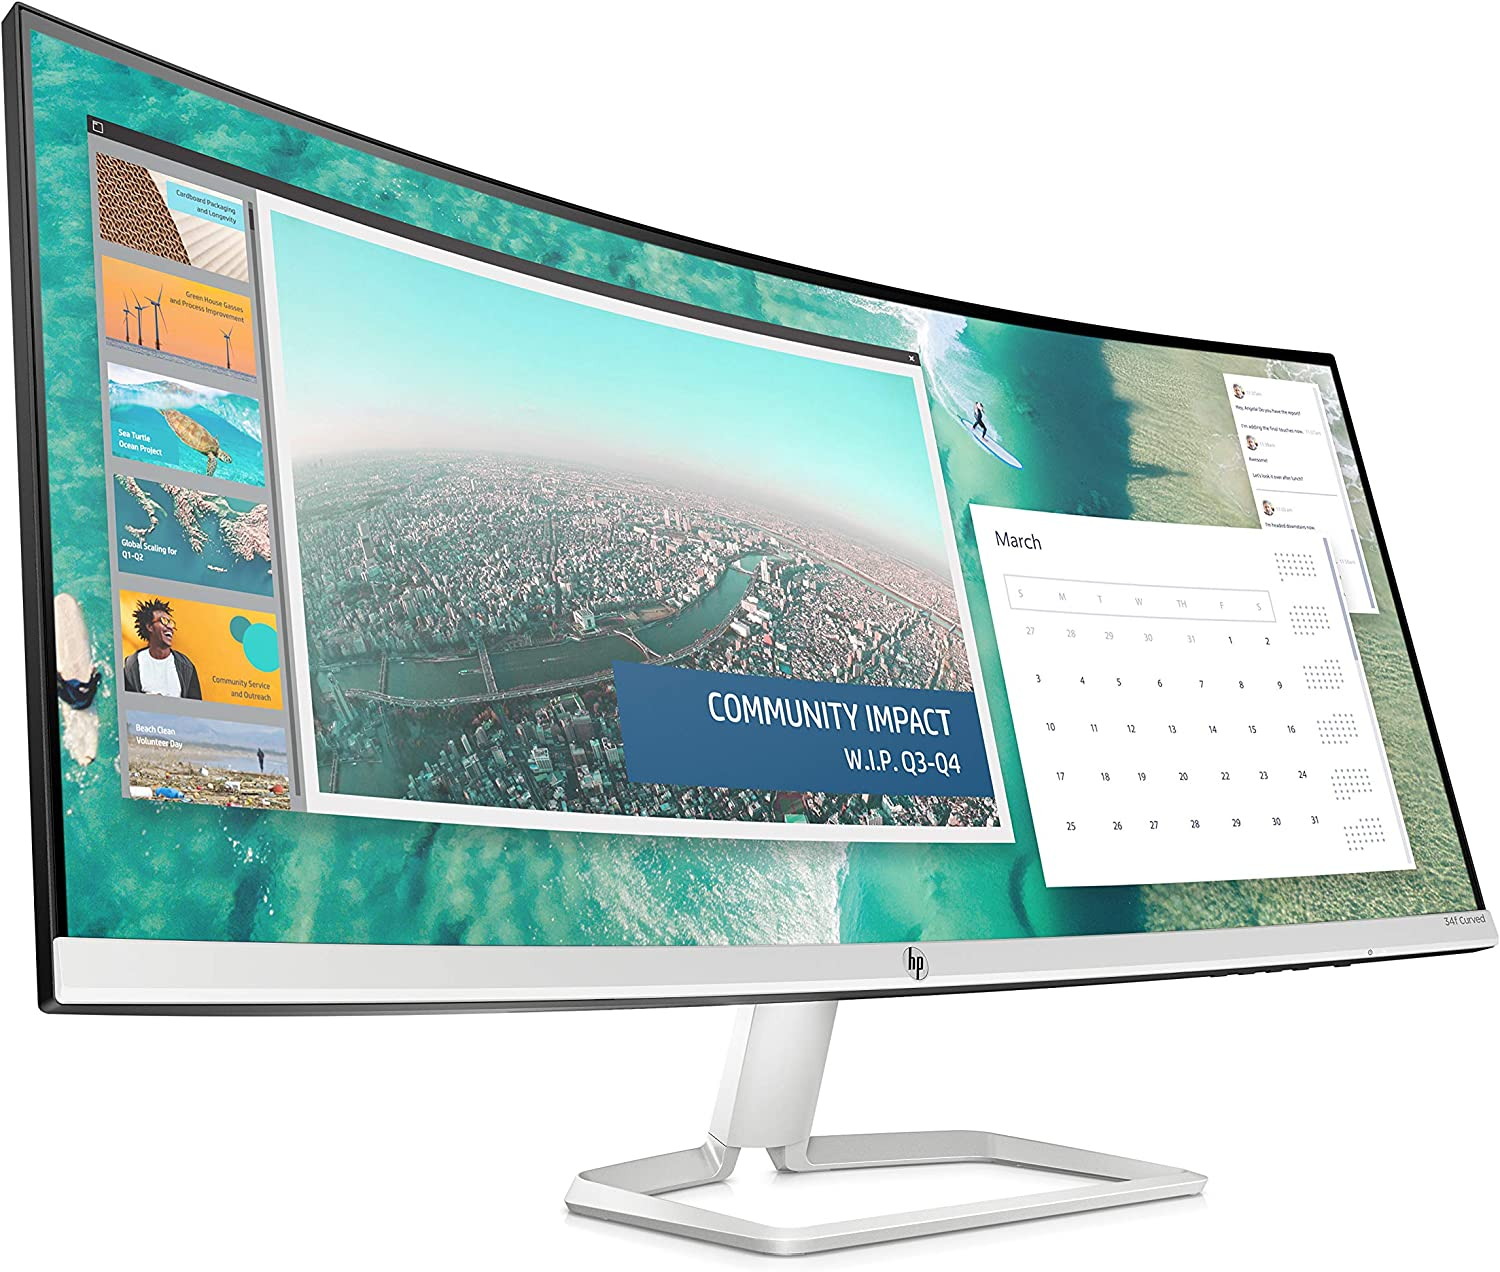 HP Ultra-Wide Curved Monitor 34 inch